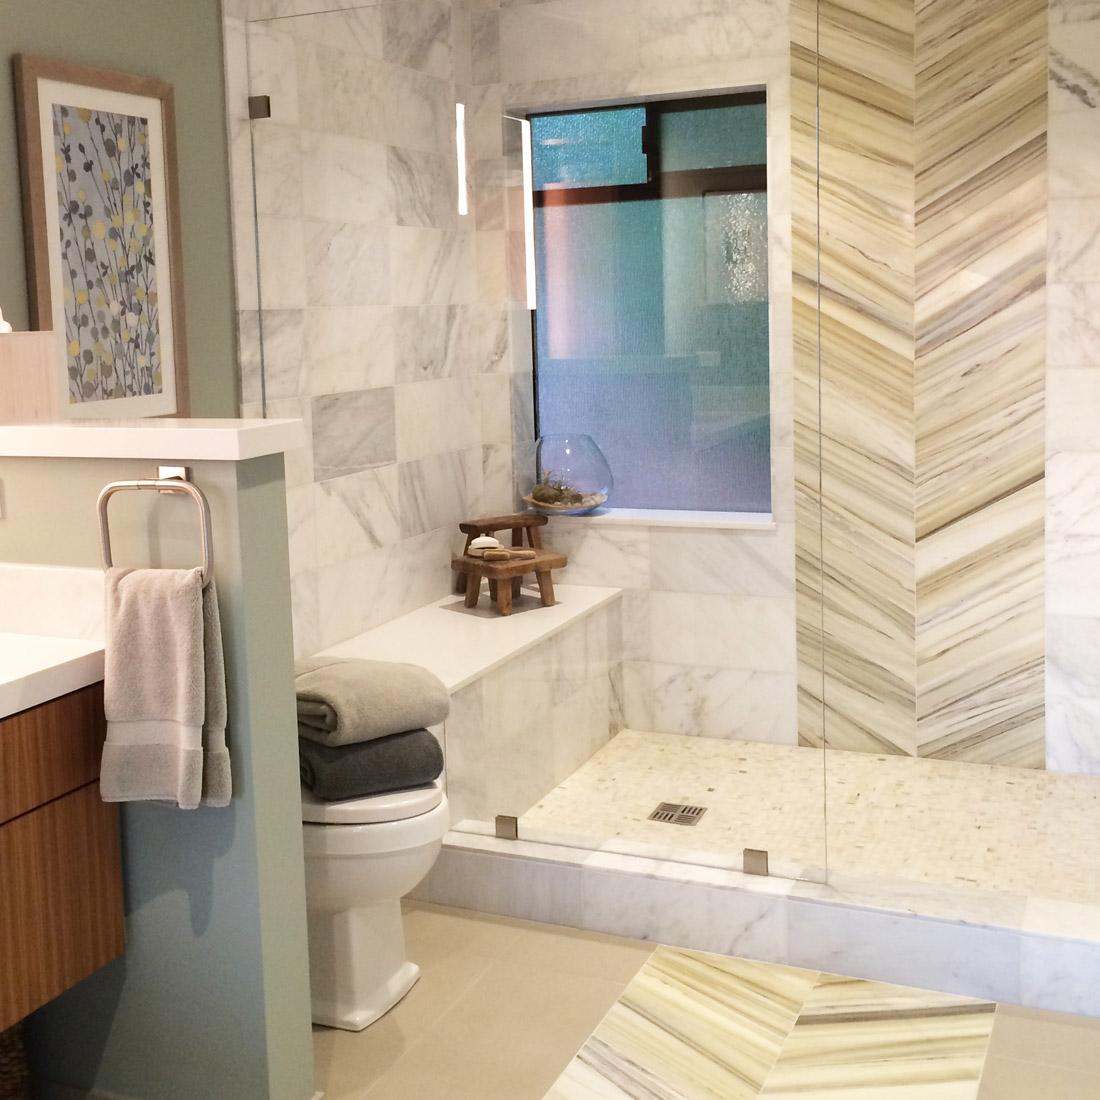 modern master bathroom shower with marble tile and bench seating with a rain head shower over a chevron tile pattern in wall and floor design by sara bates interior design